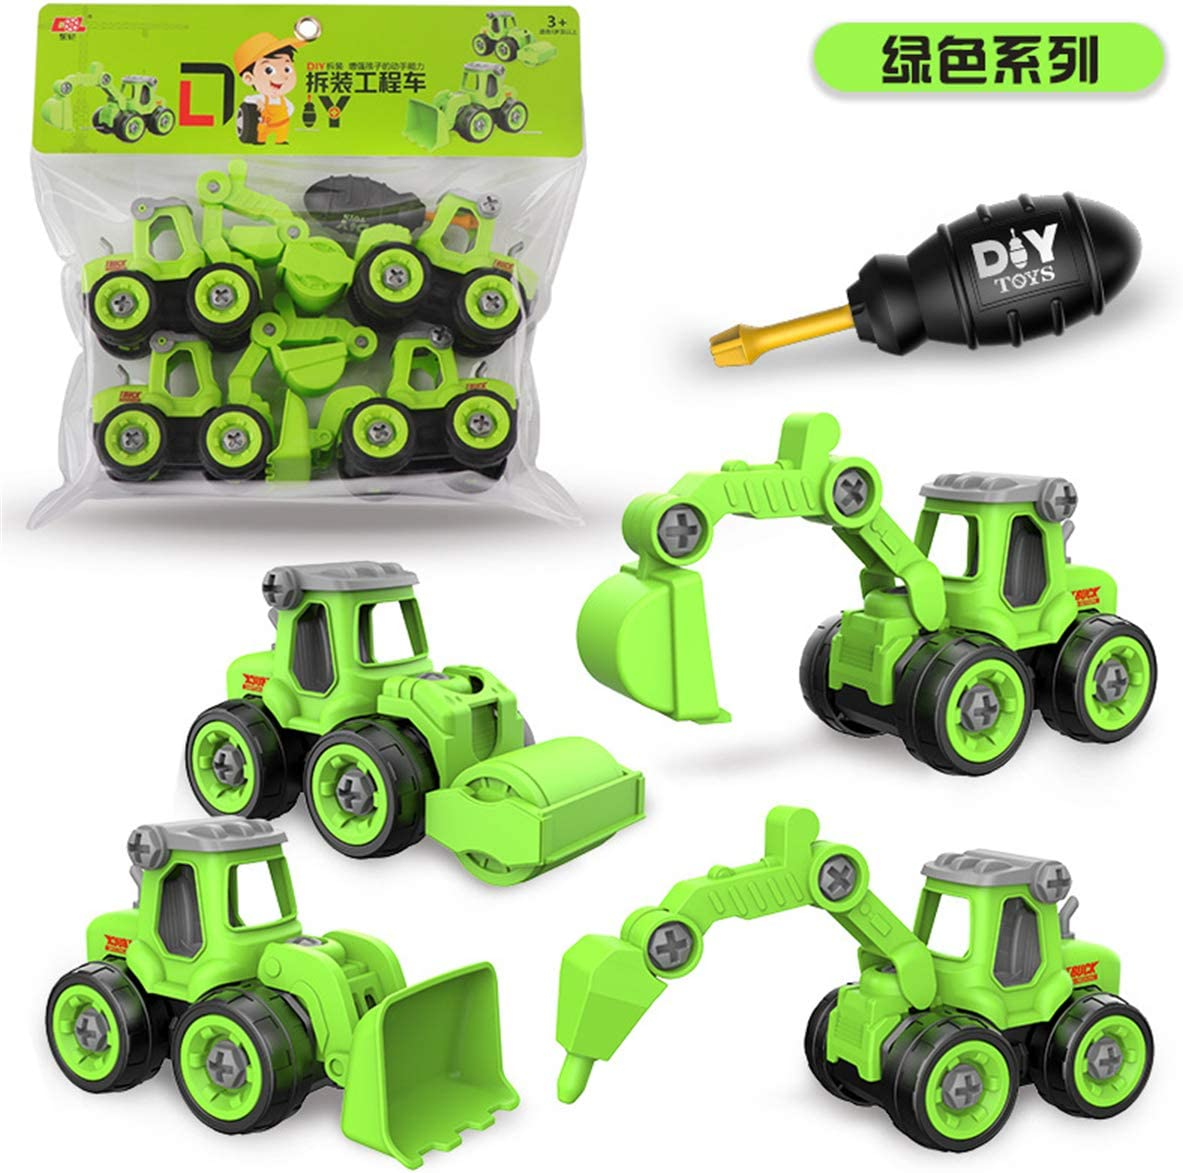 4pcs Construction Toy Engineering 40% OFF Cheap Sale Car and Ultra-Cheap Deals Fire Screw Build Truck